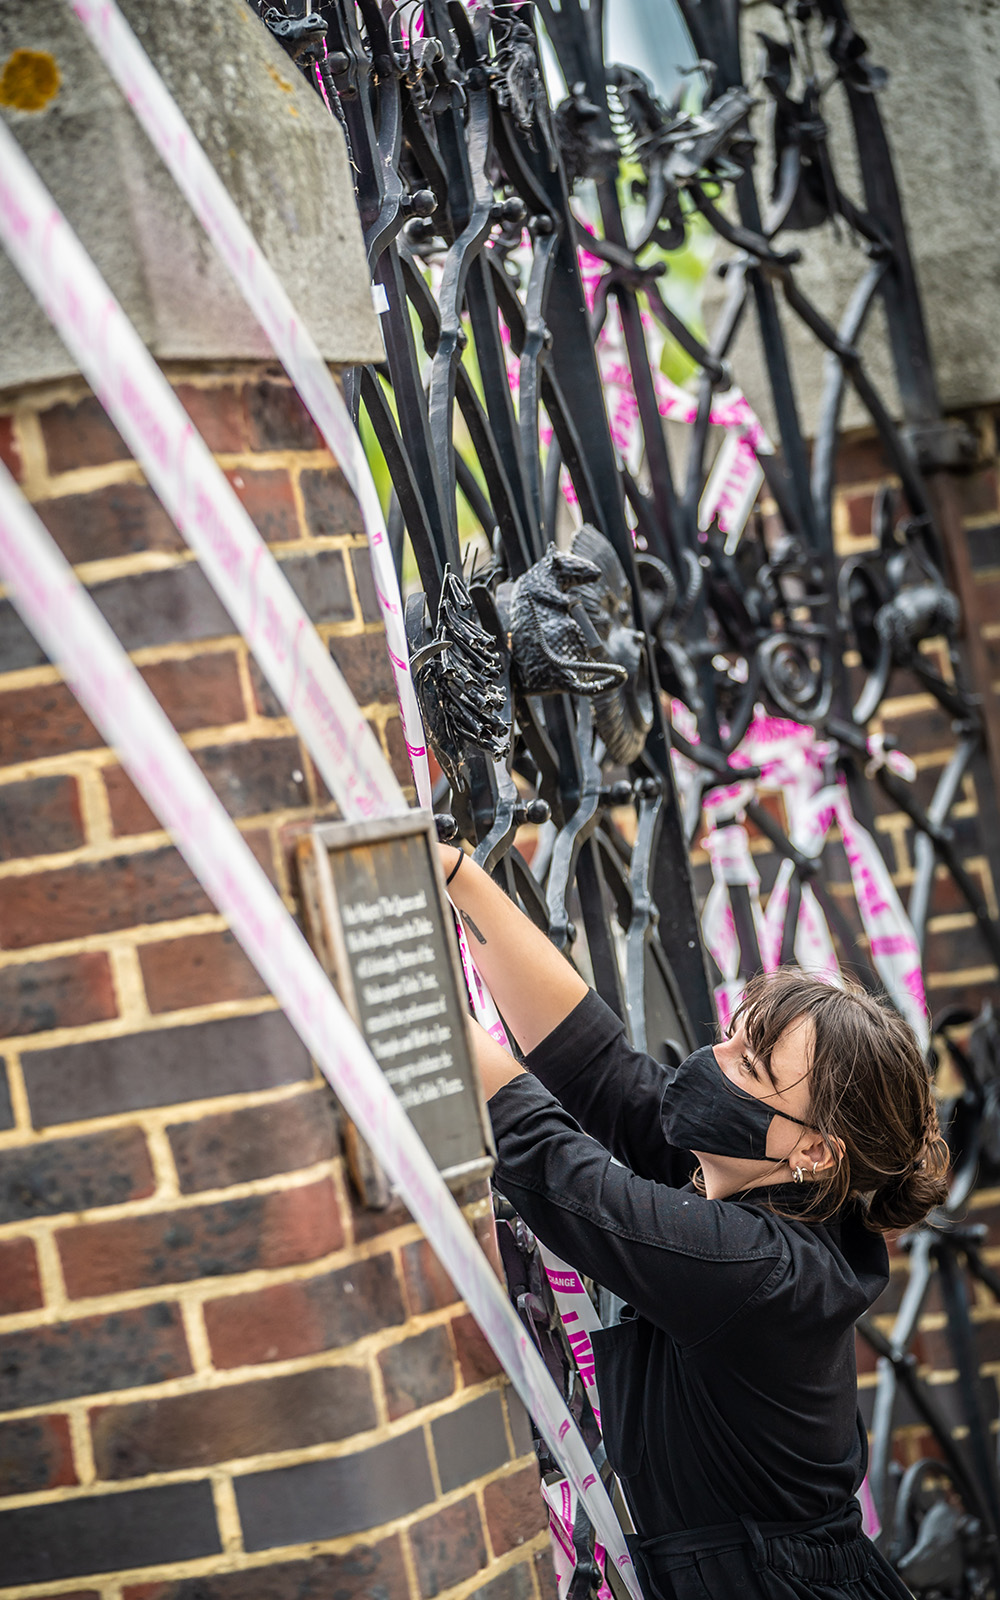 A woman leans up to adjust a piece of white and pink tape on a set of iron gates.